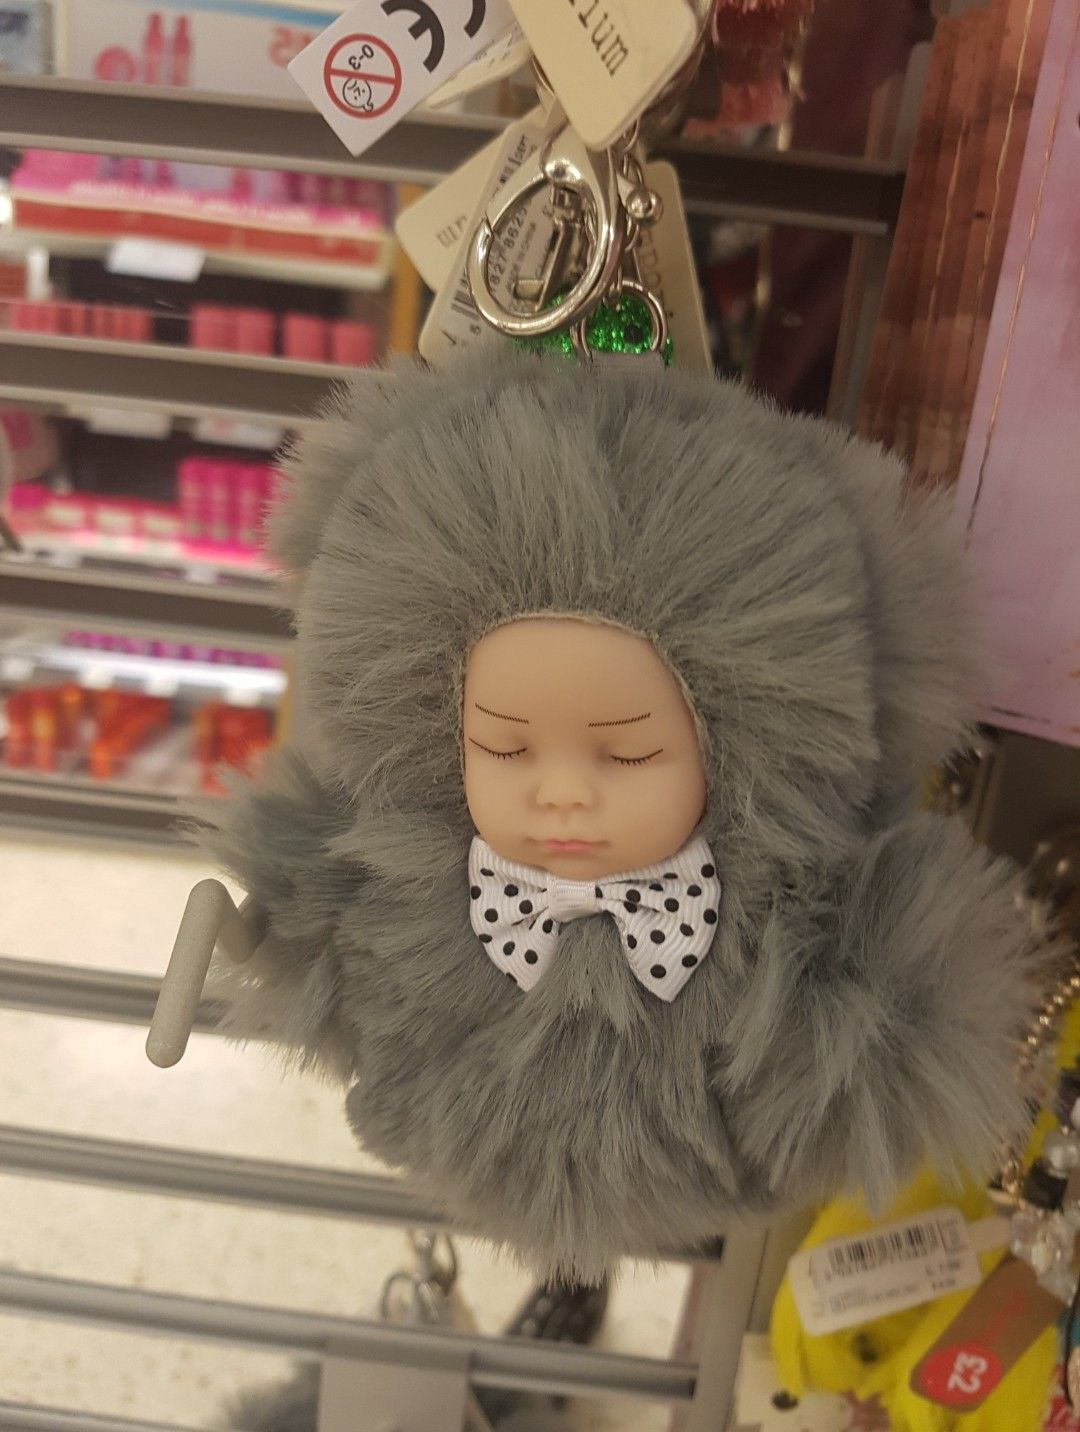 CURSED IMAGE Winter hats, Cursed images, Image